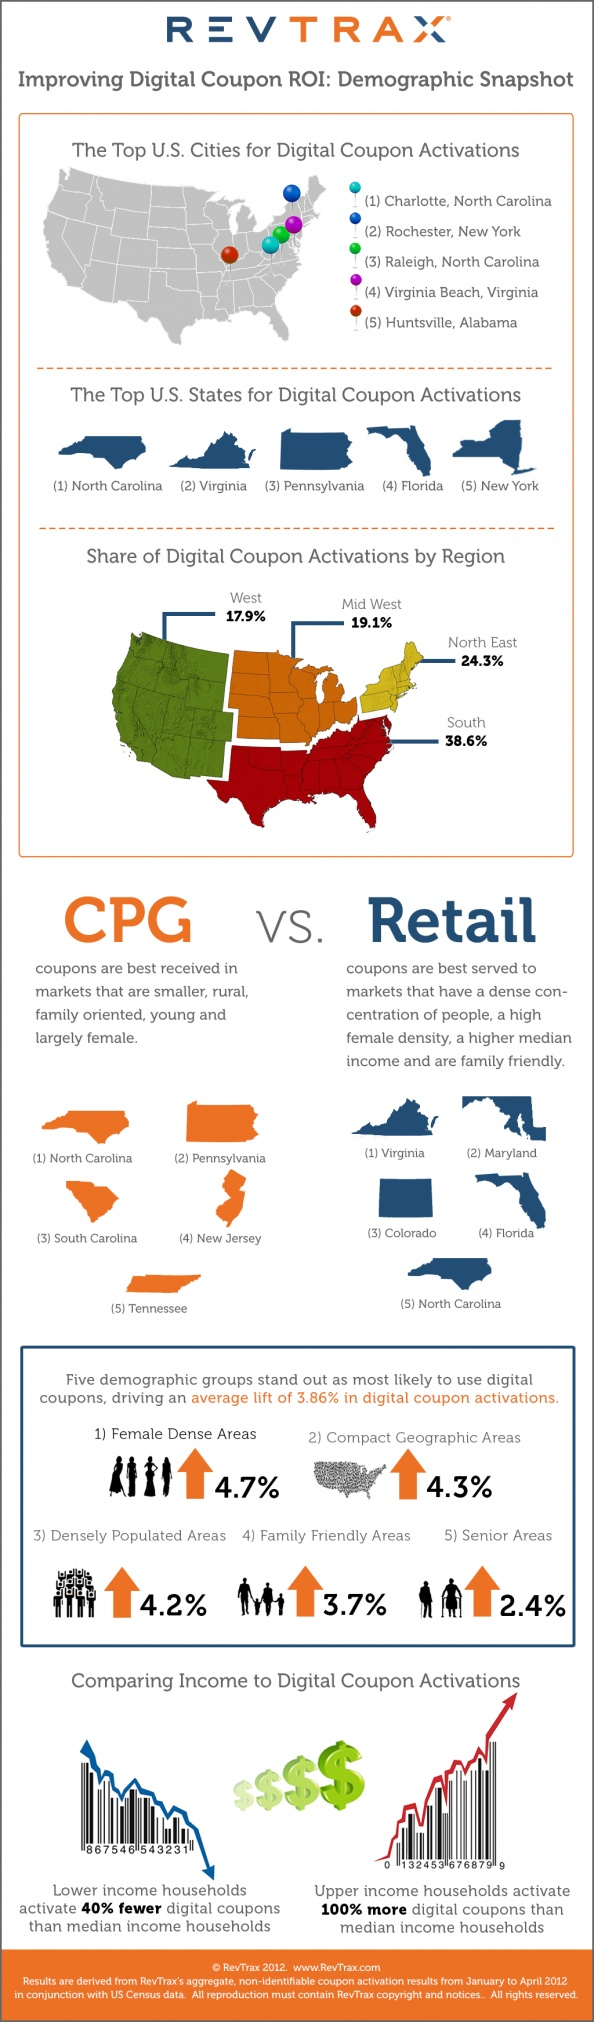 Daily deals coupons